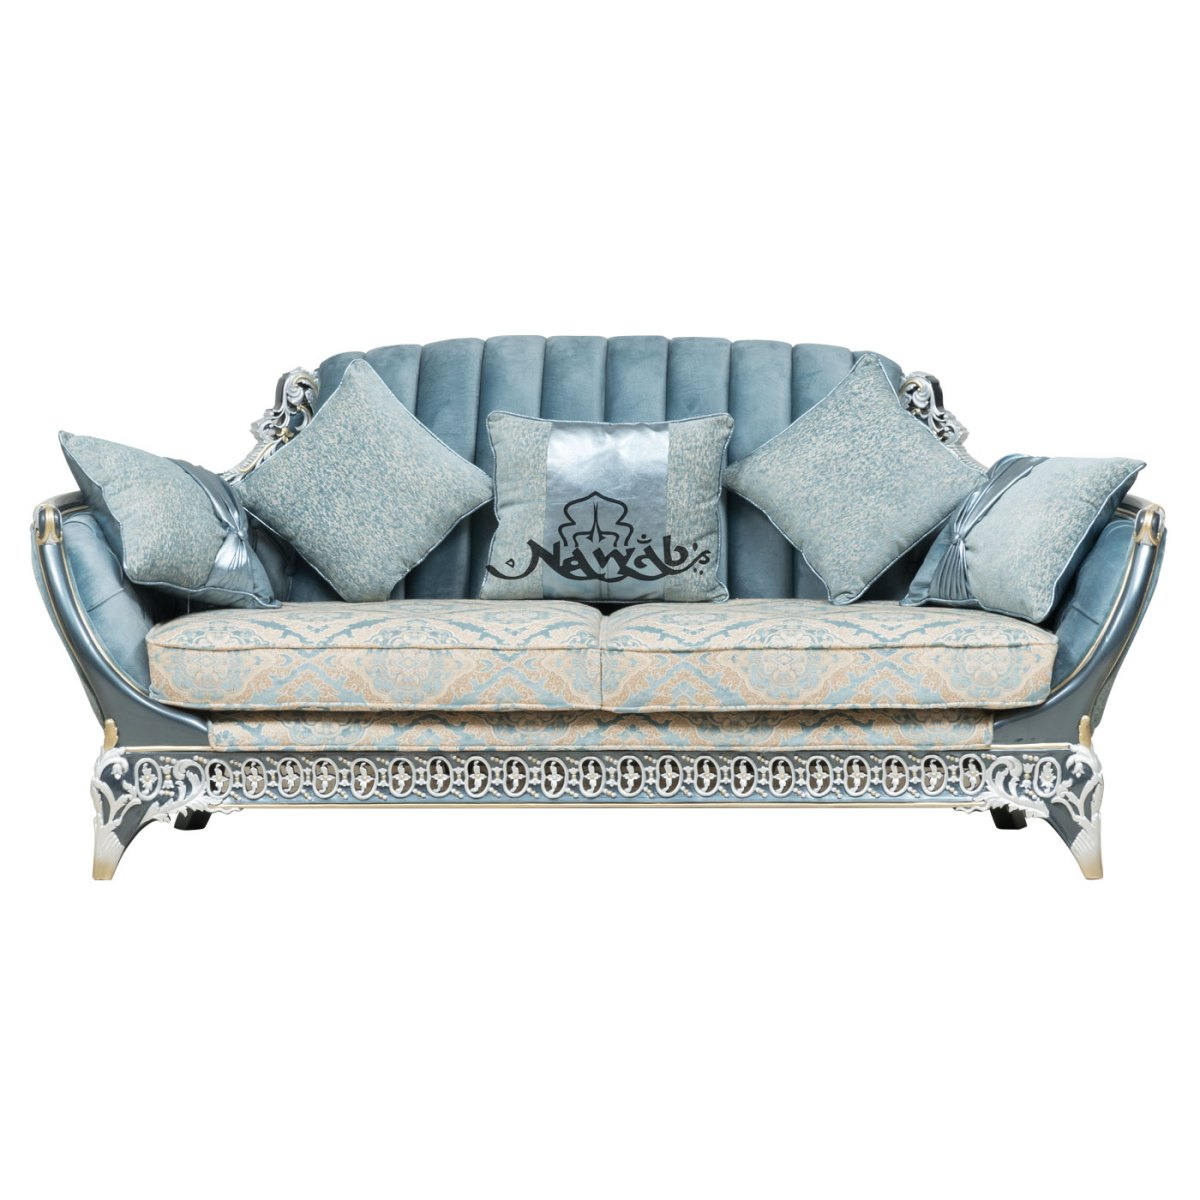 3-seater-teakwood-hand-carved-sofa-blue-white-pearl-polish-with-golden-lining-high-end-suede-upholstery-table-blue-onyx-top